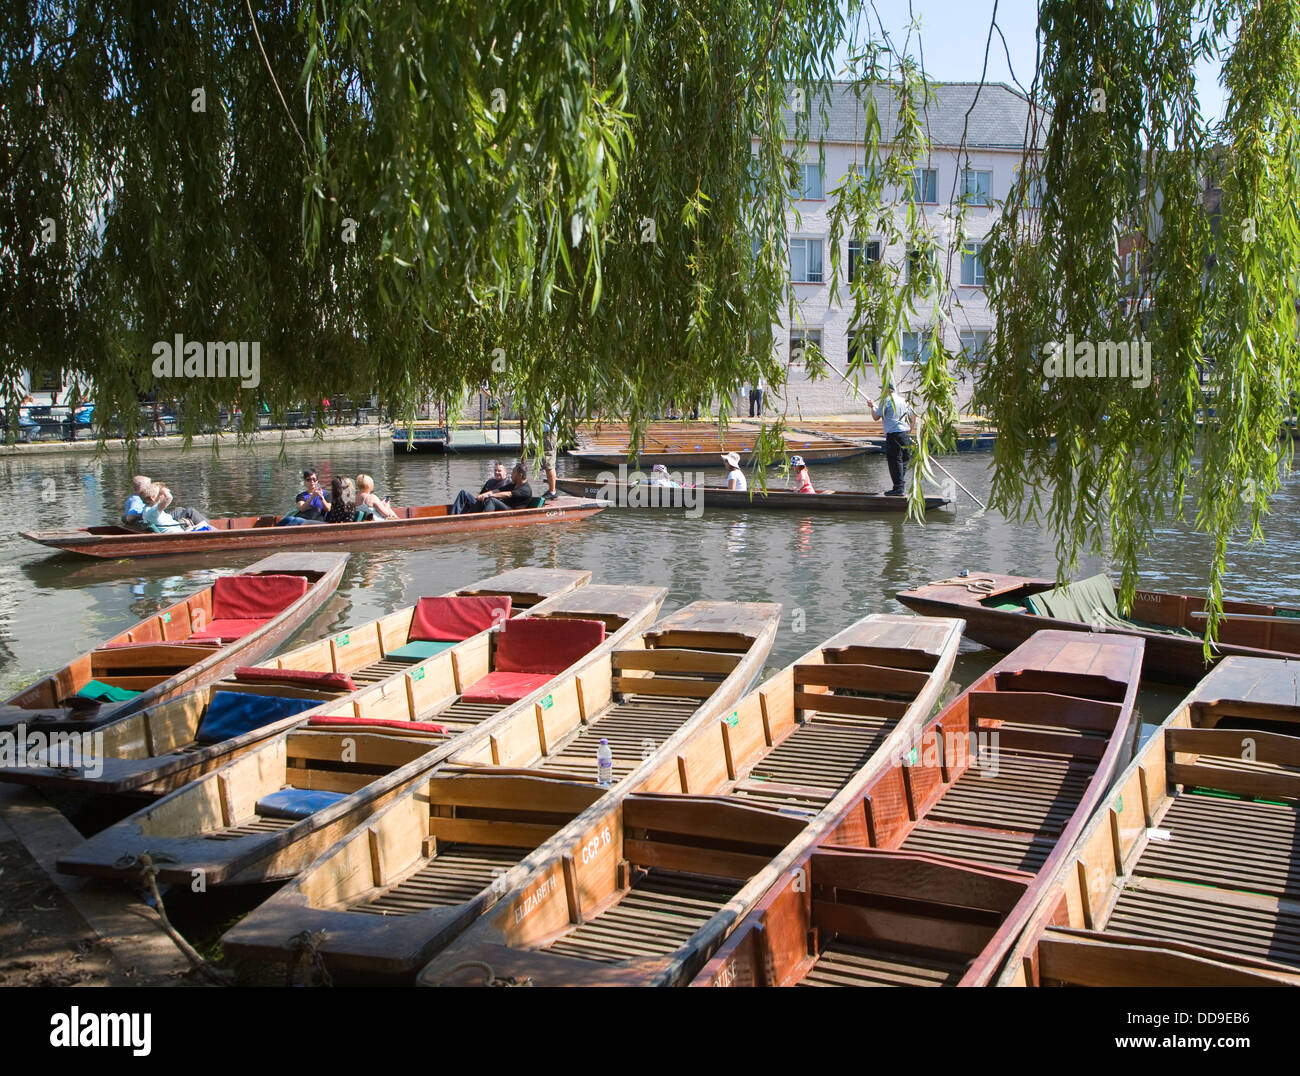 Punts willow tree leaves River Cam Cambridge England - Stock Image